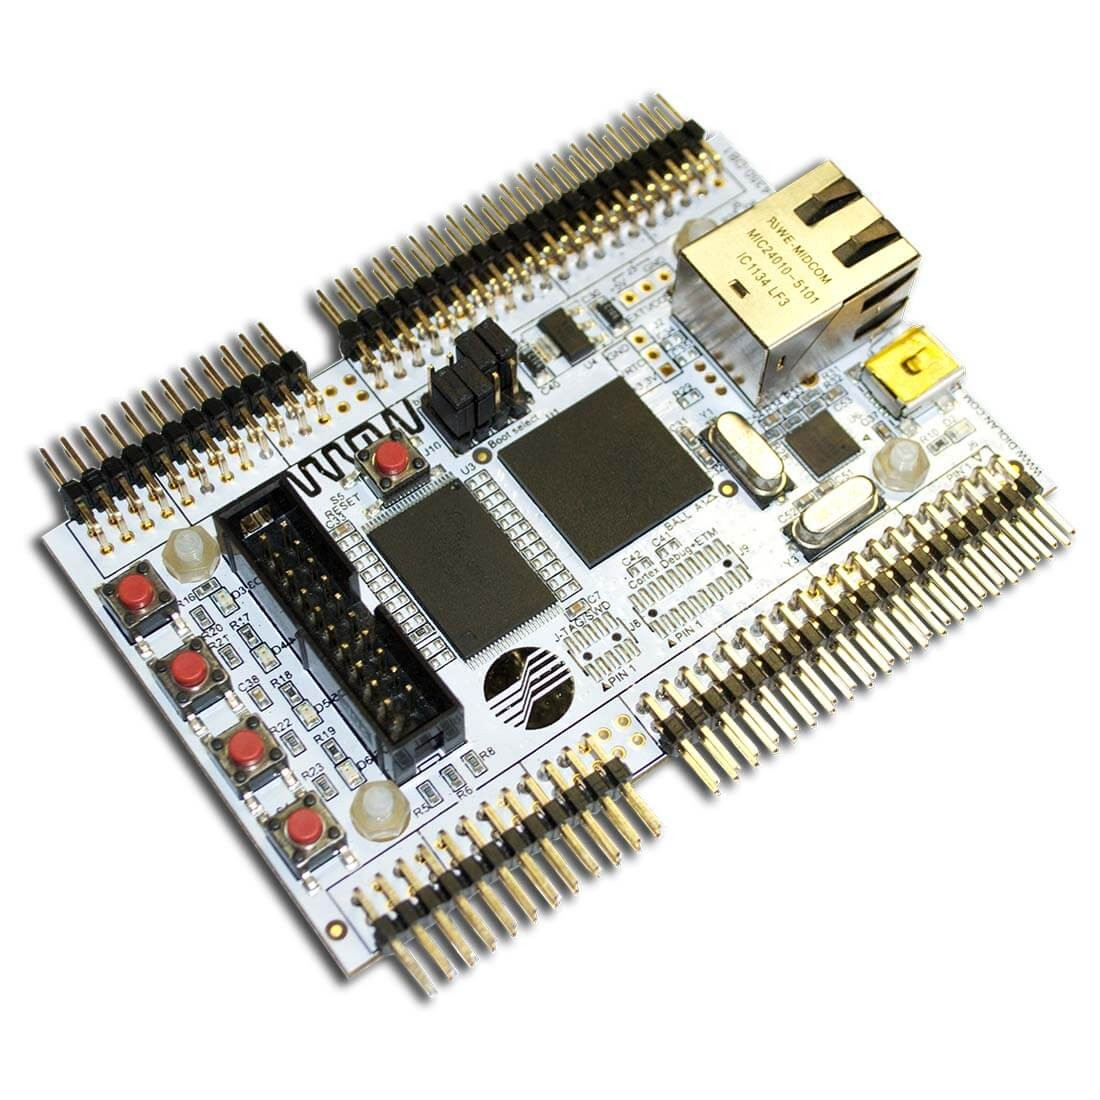 LPC4357-DB1-C Development Board (with external 64 Mbit SDRAM and connectors)